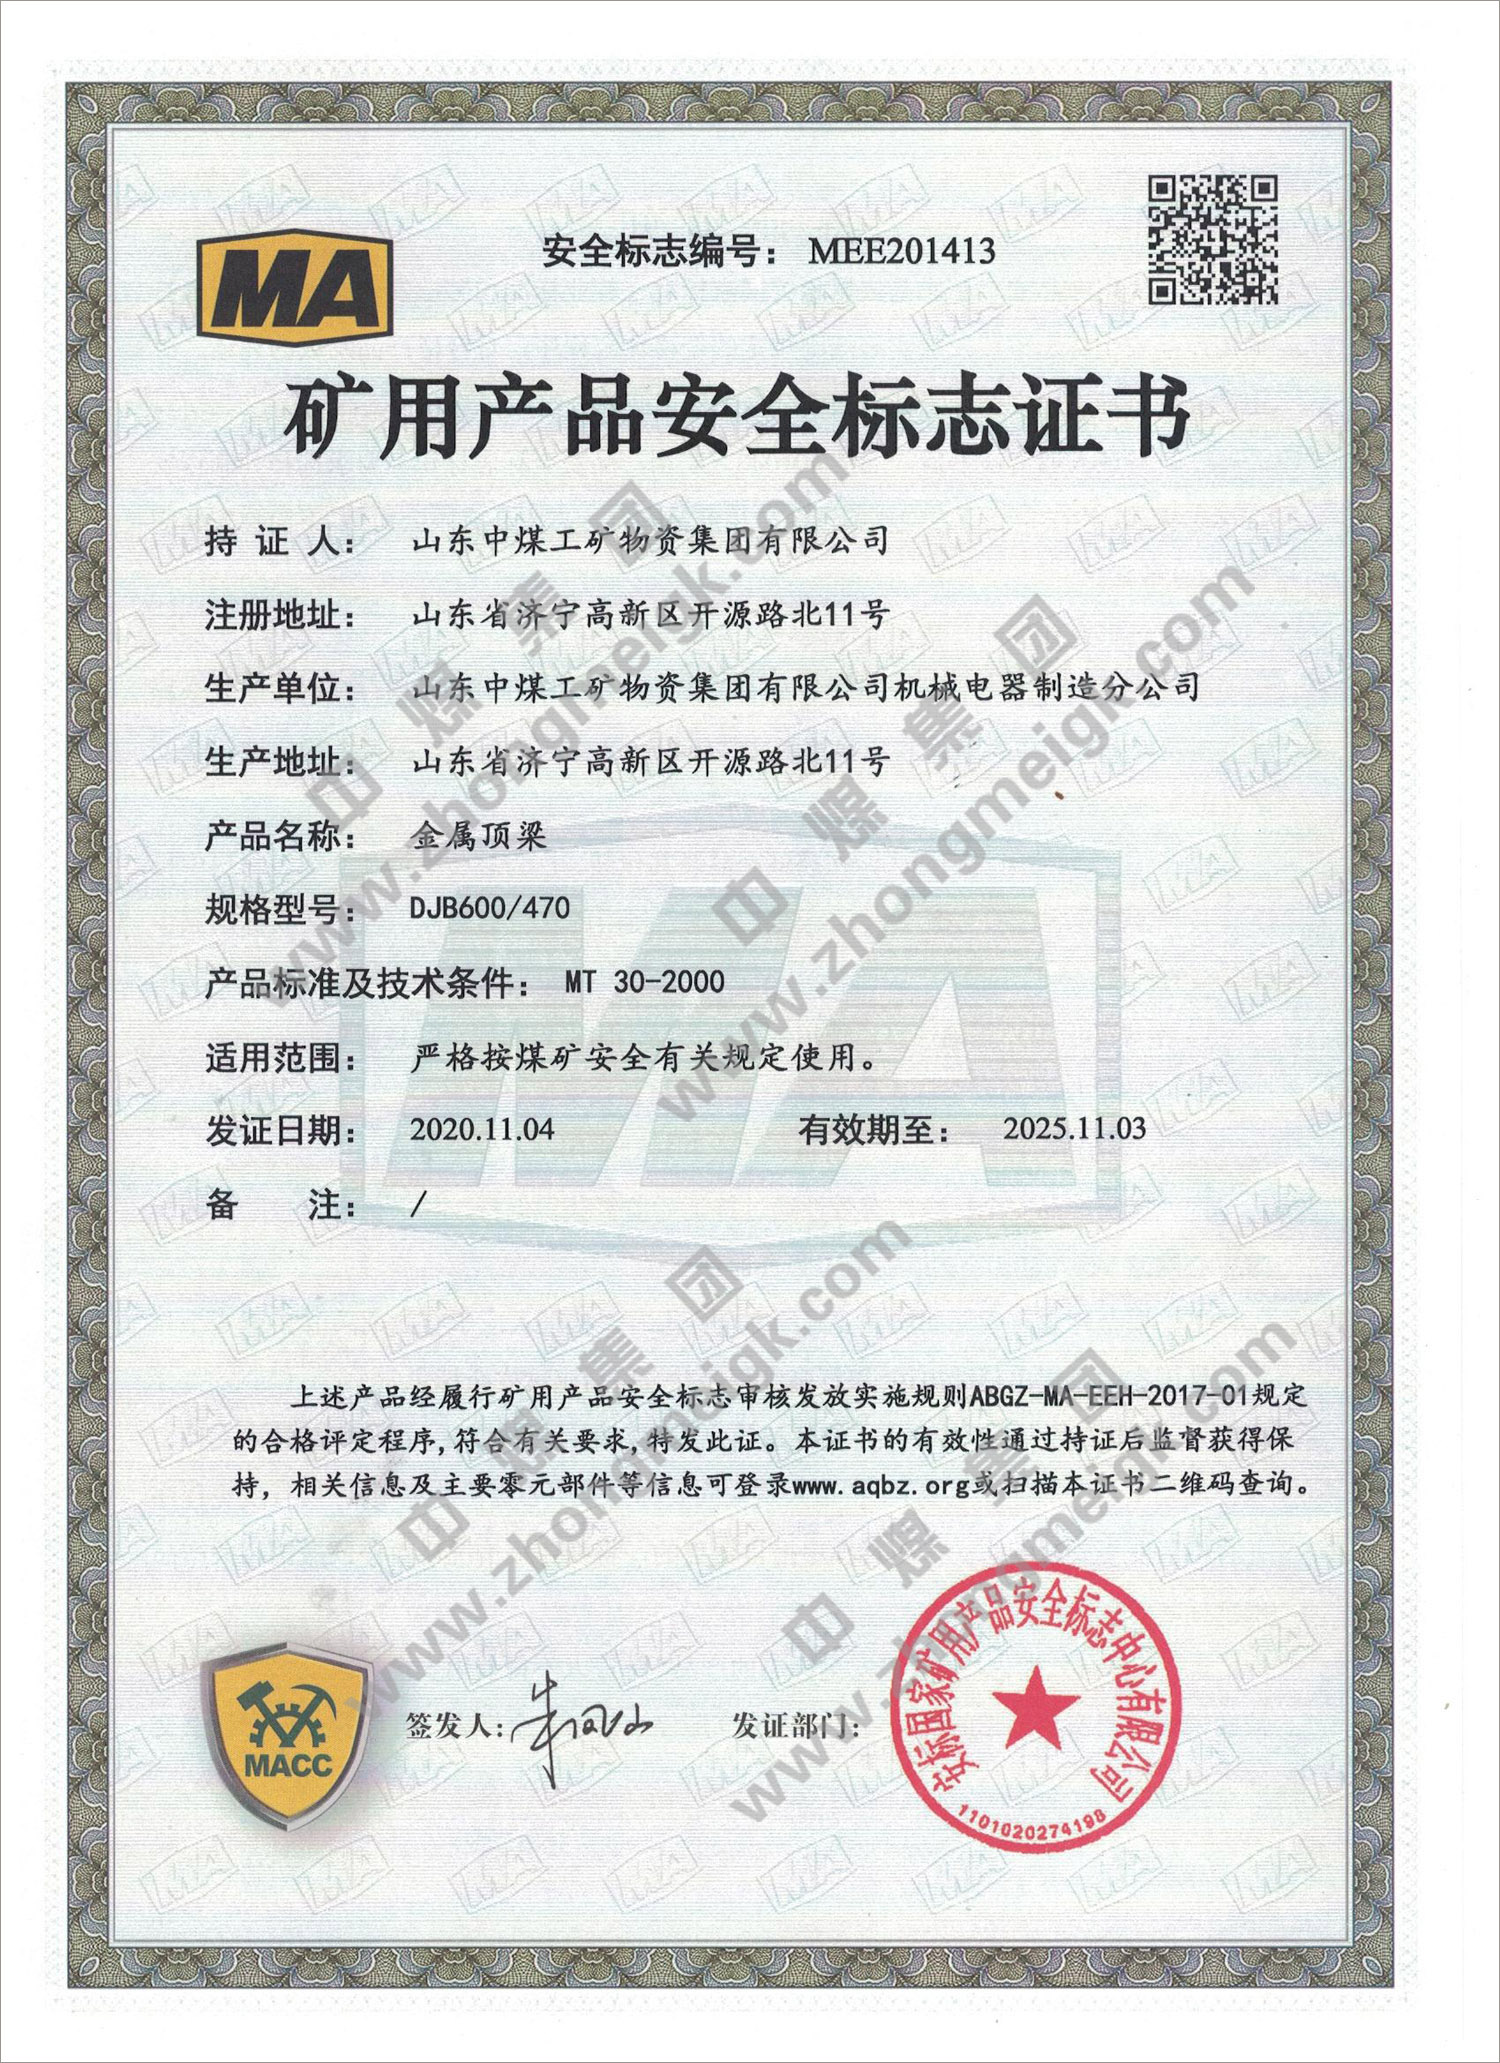 Warm Congratulations China Coal Group Metal Roof Beam Get National Mining Product Safety Mark Certificate